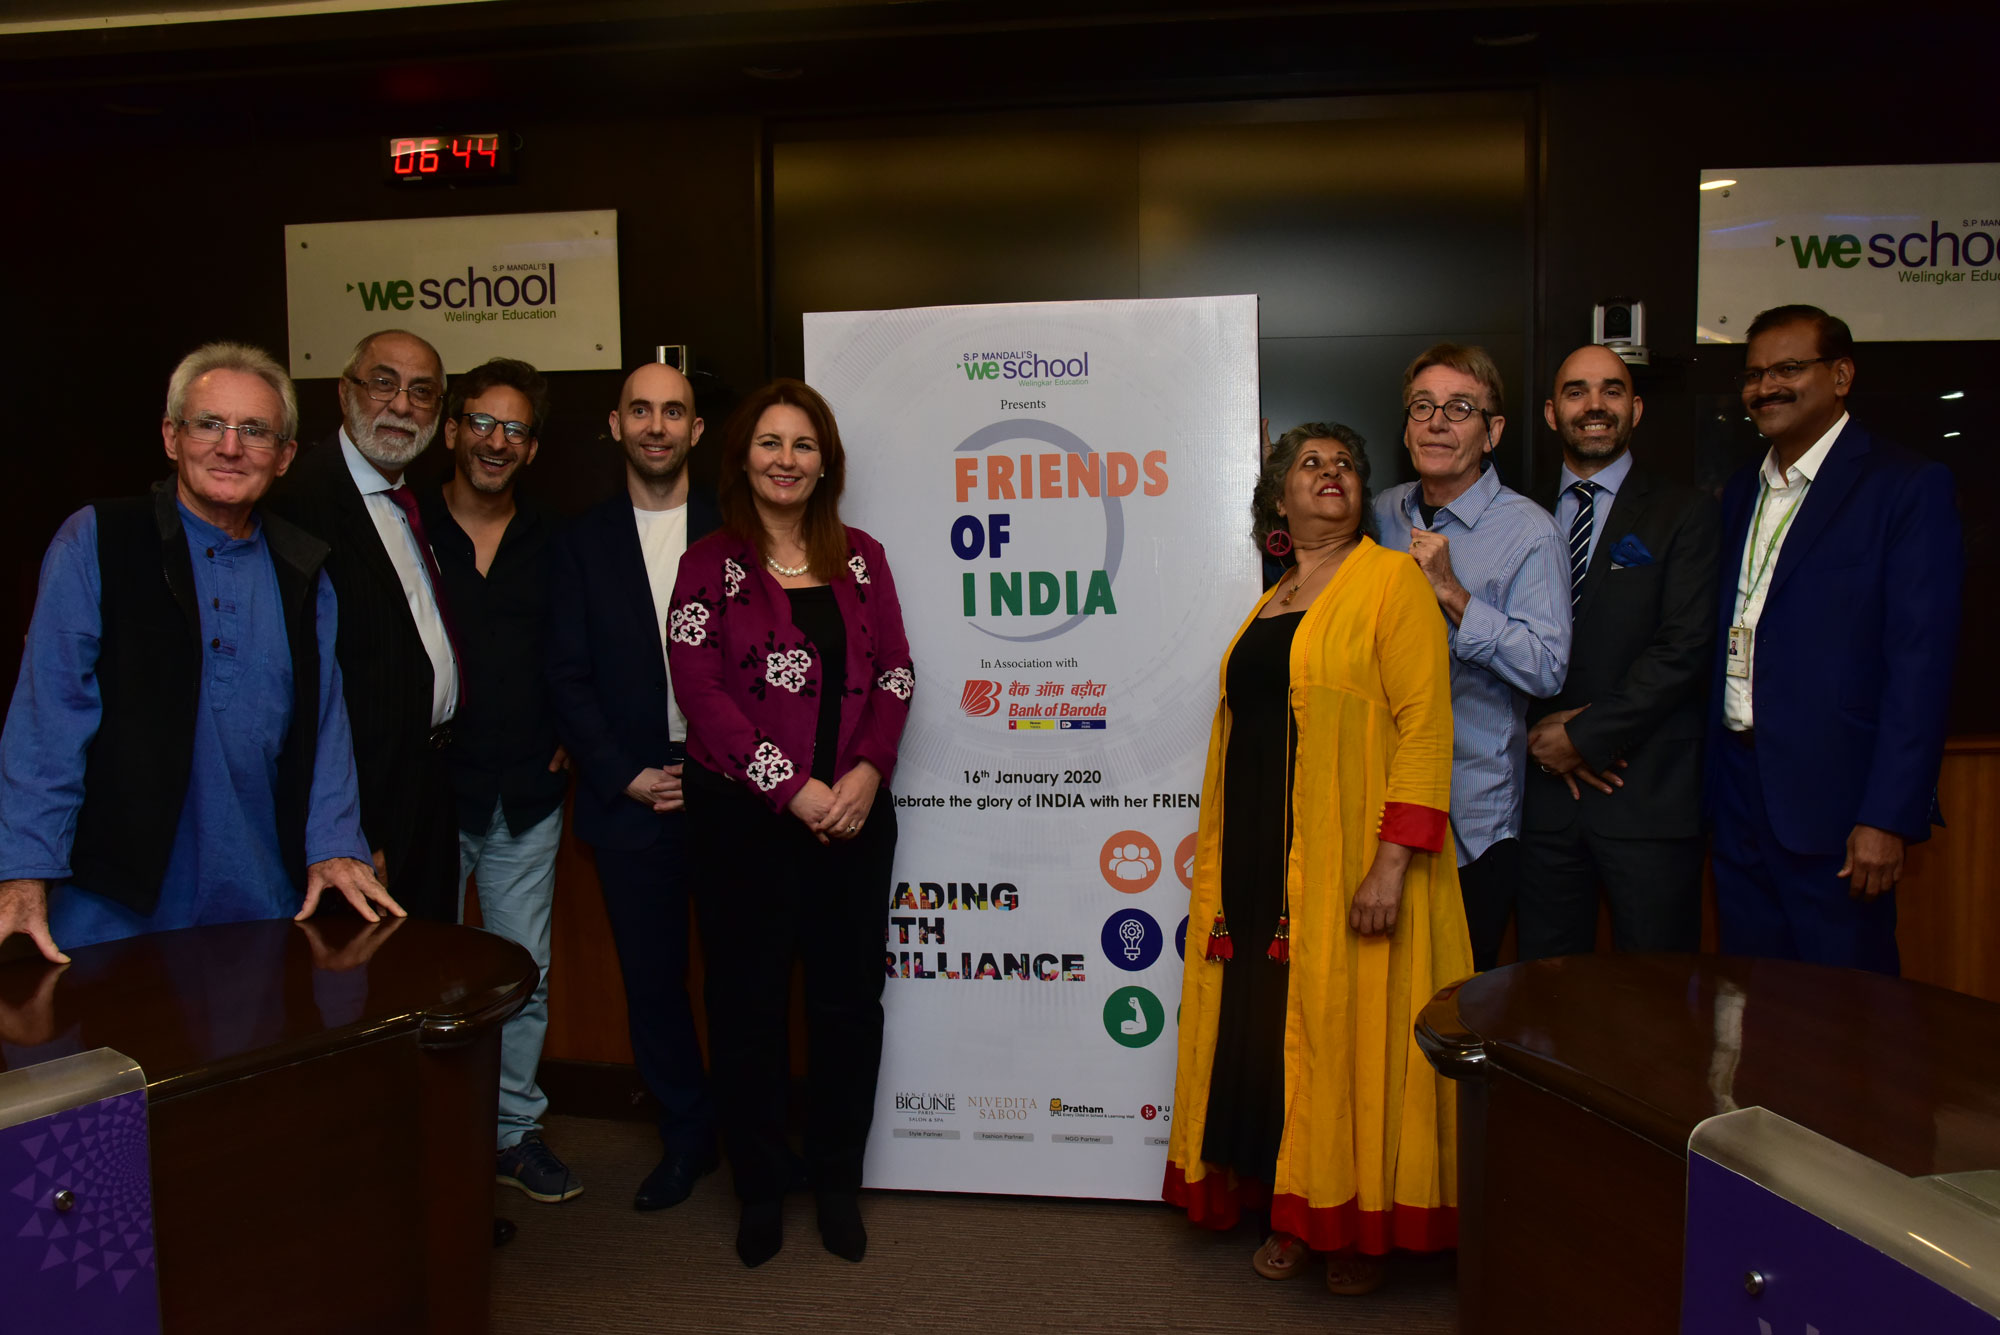 Bollywood and Television stars support 'Friends of India' initiative by S.P. Mandali's WeSchool